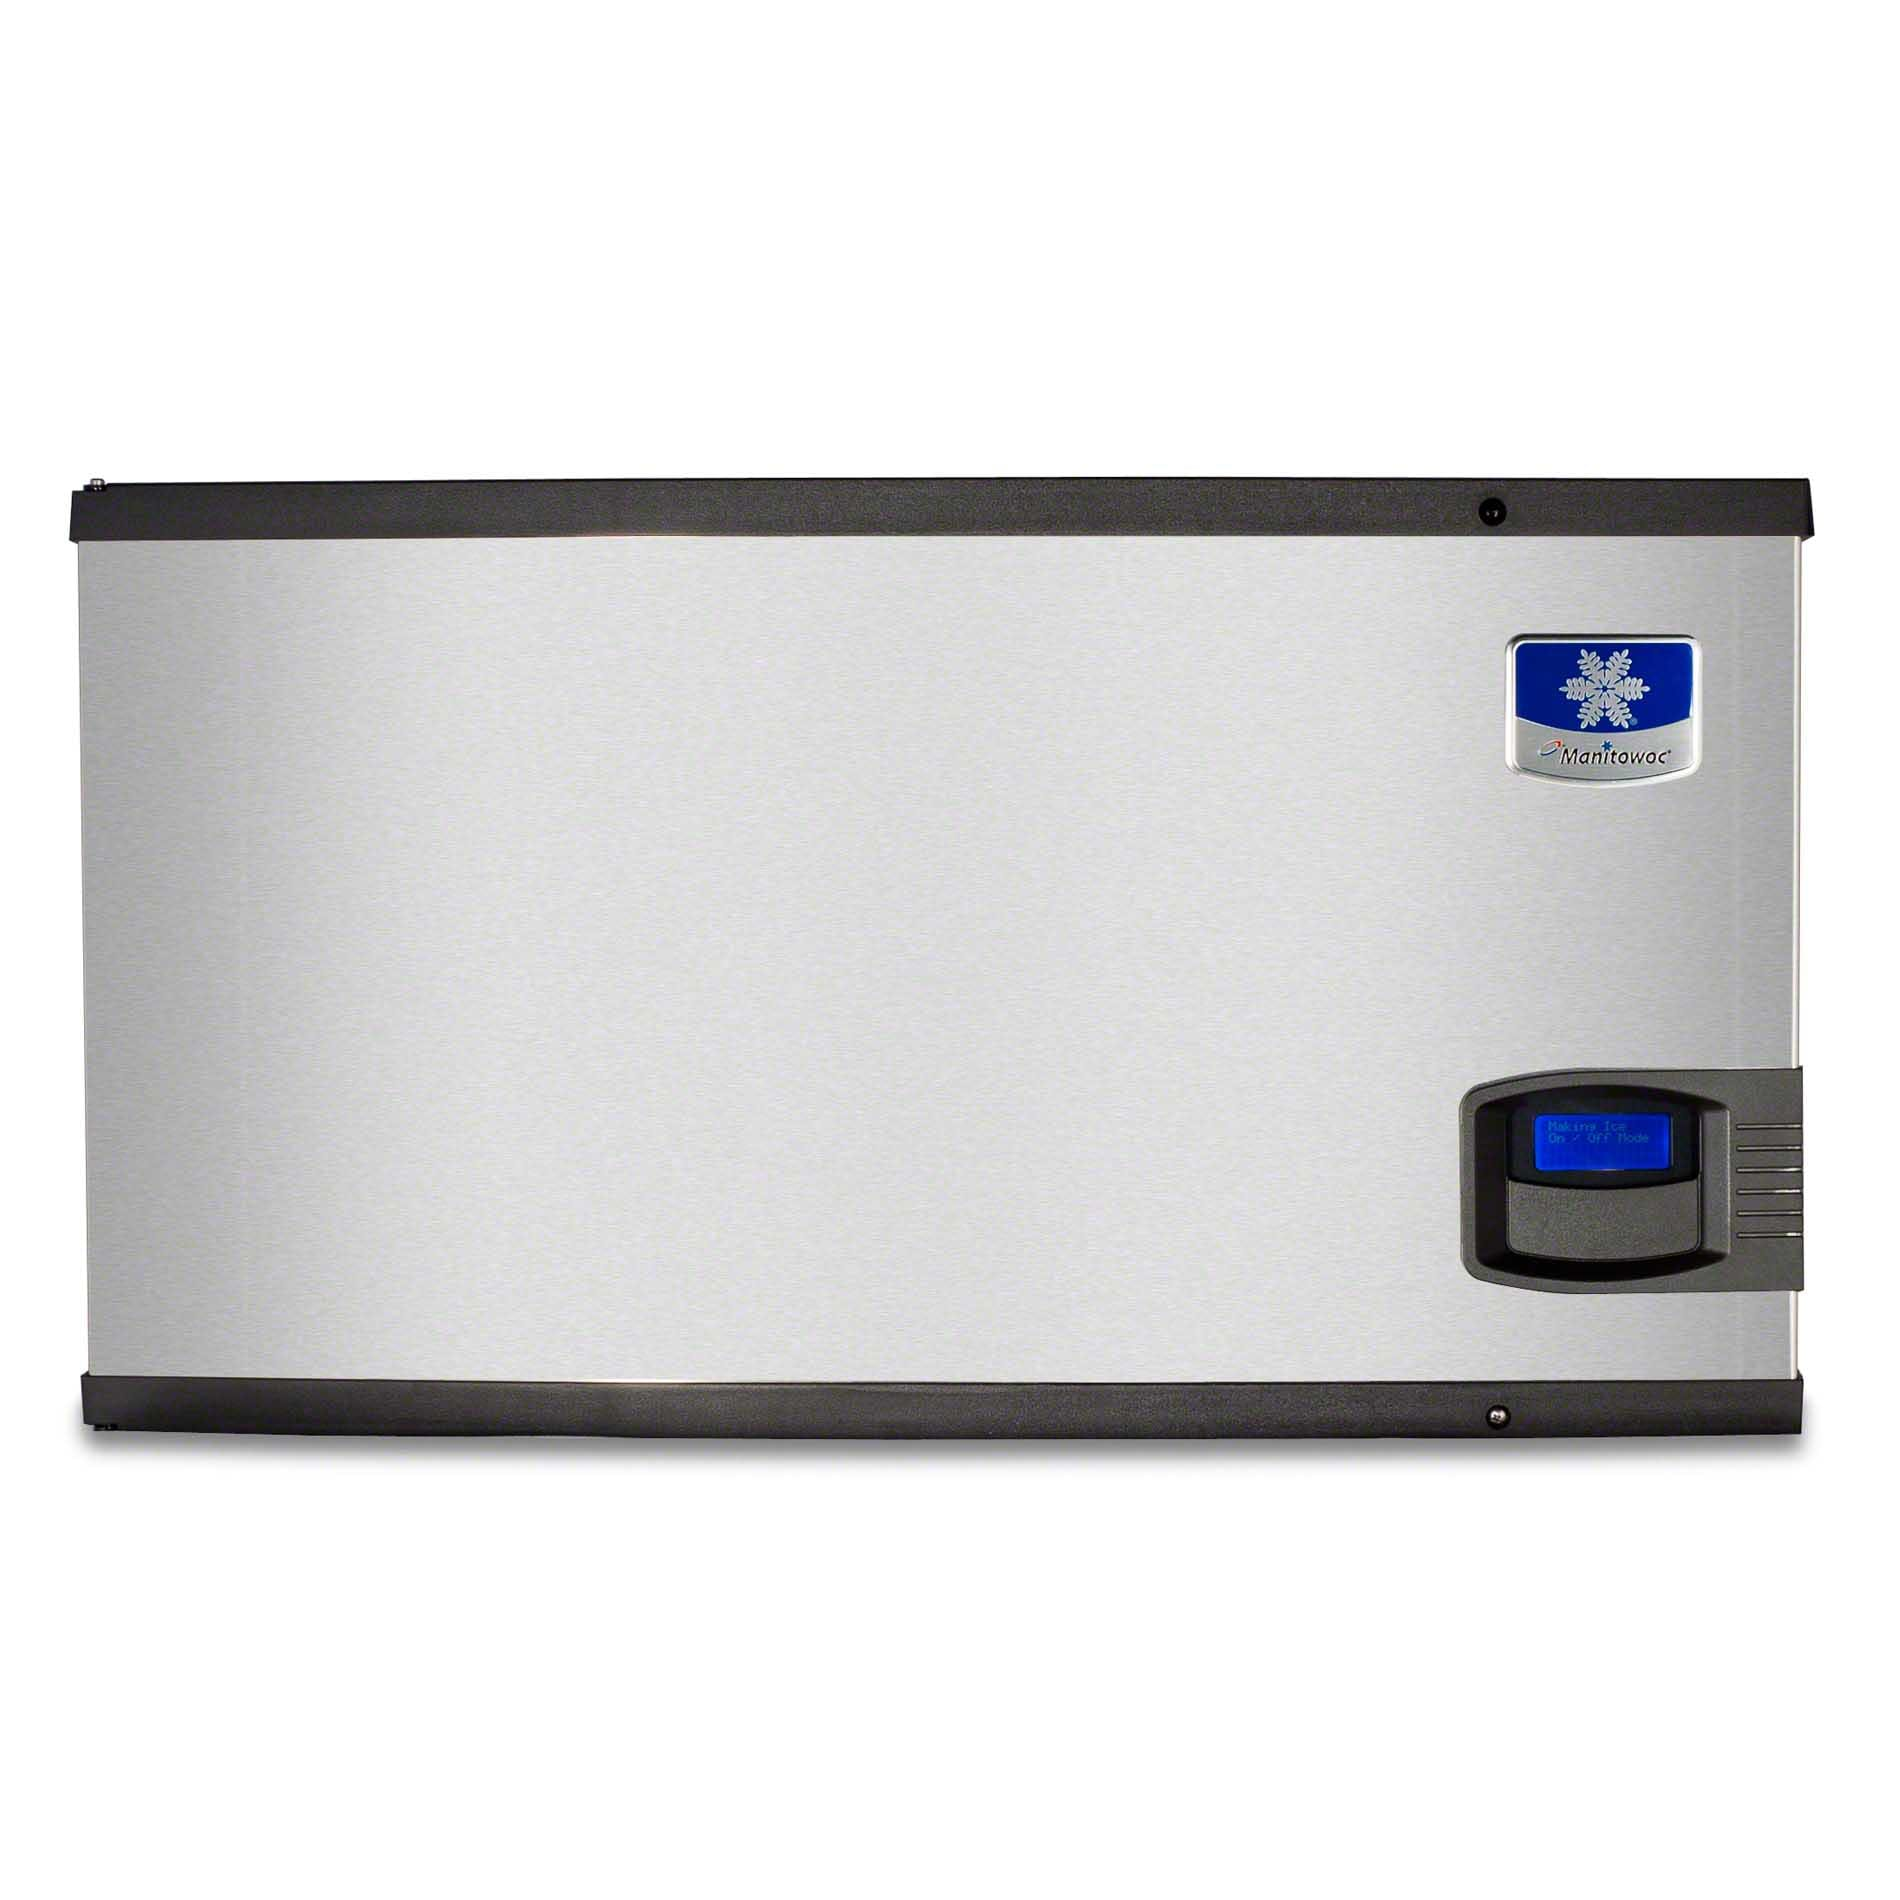 Manitowoc - IY-0305W 300 lb Half Size Cube Ice Machine - Indigo Series - sold by Food Service Warehouse